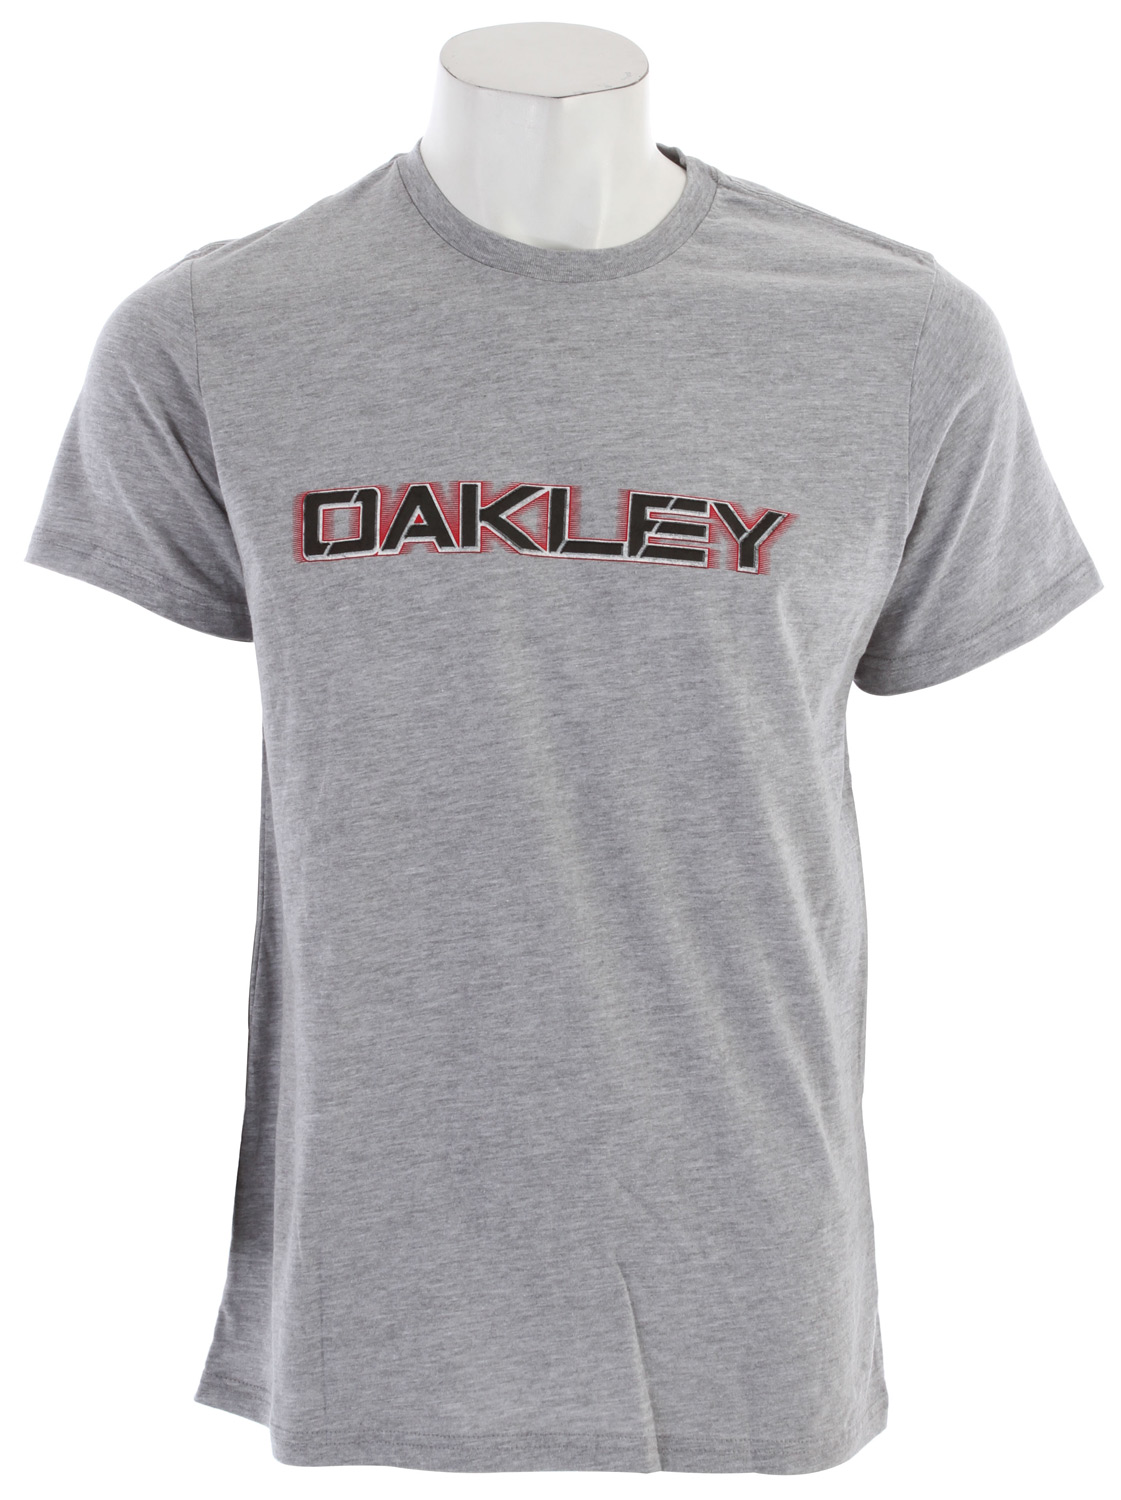 Key Features of the Oakley Unleash The Beast T-Shirt: Front and back screen print 100% Cotton - $19.95